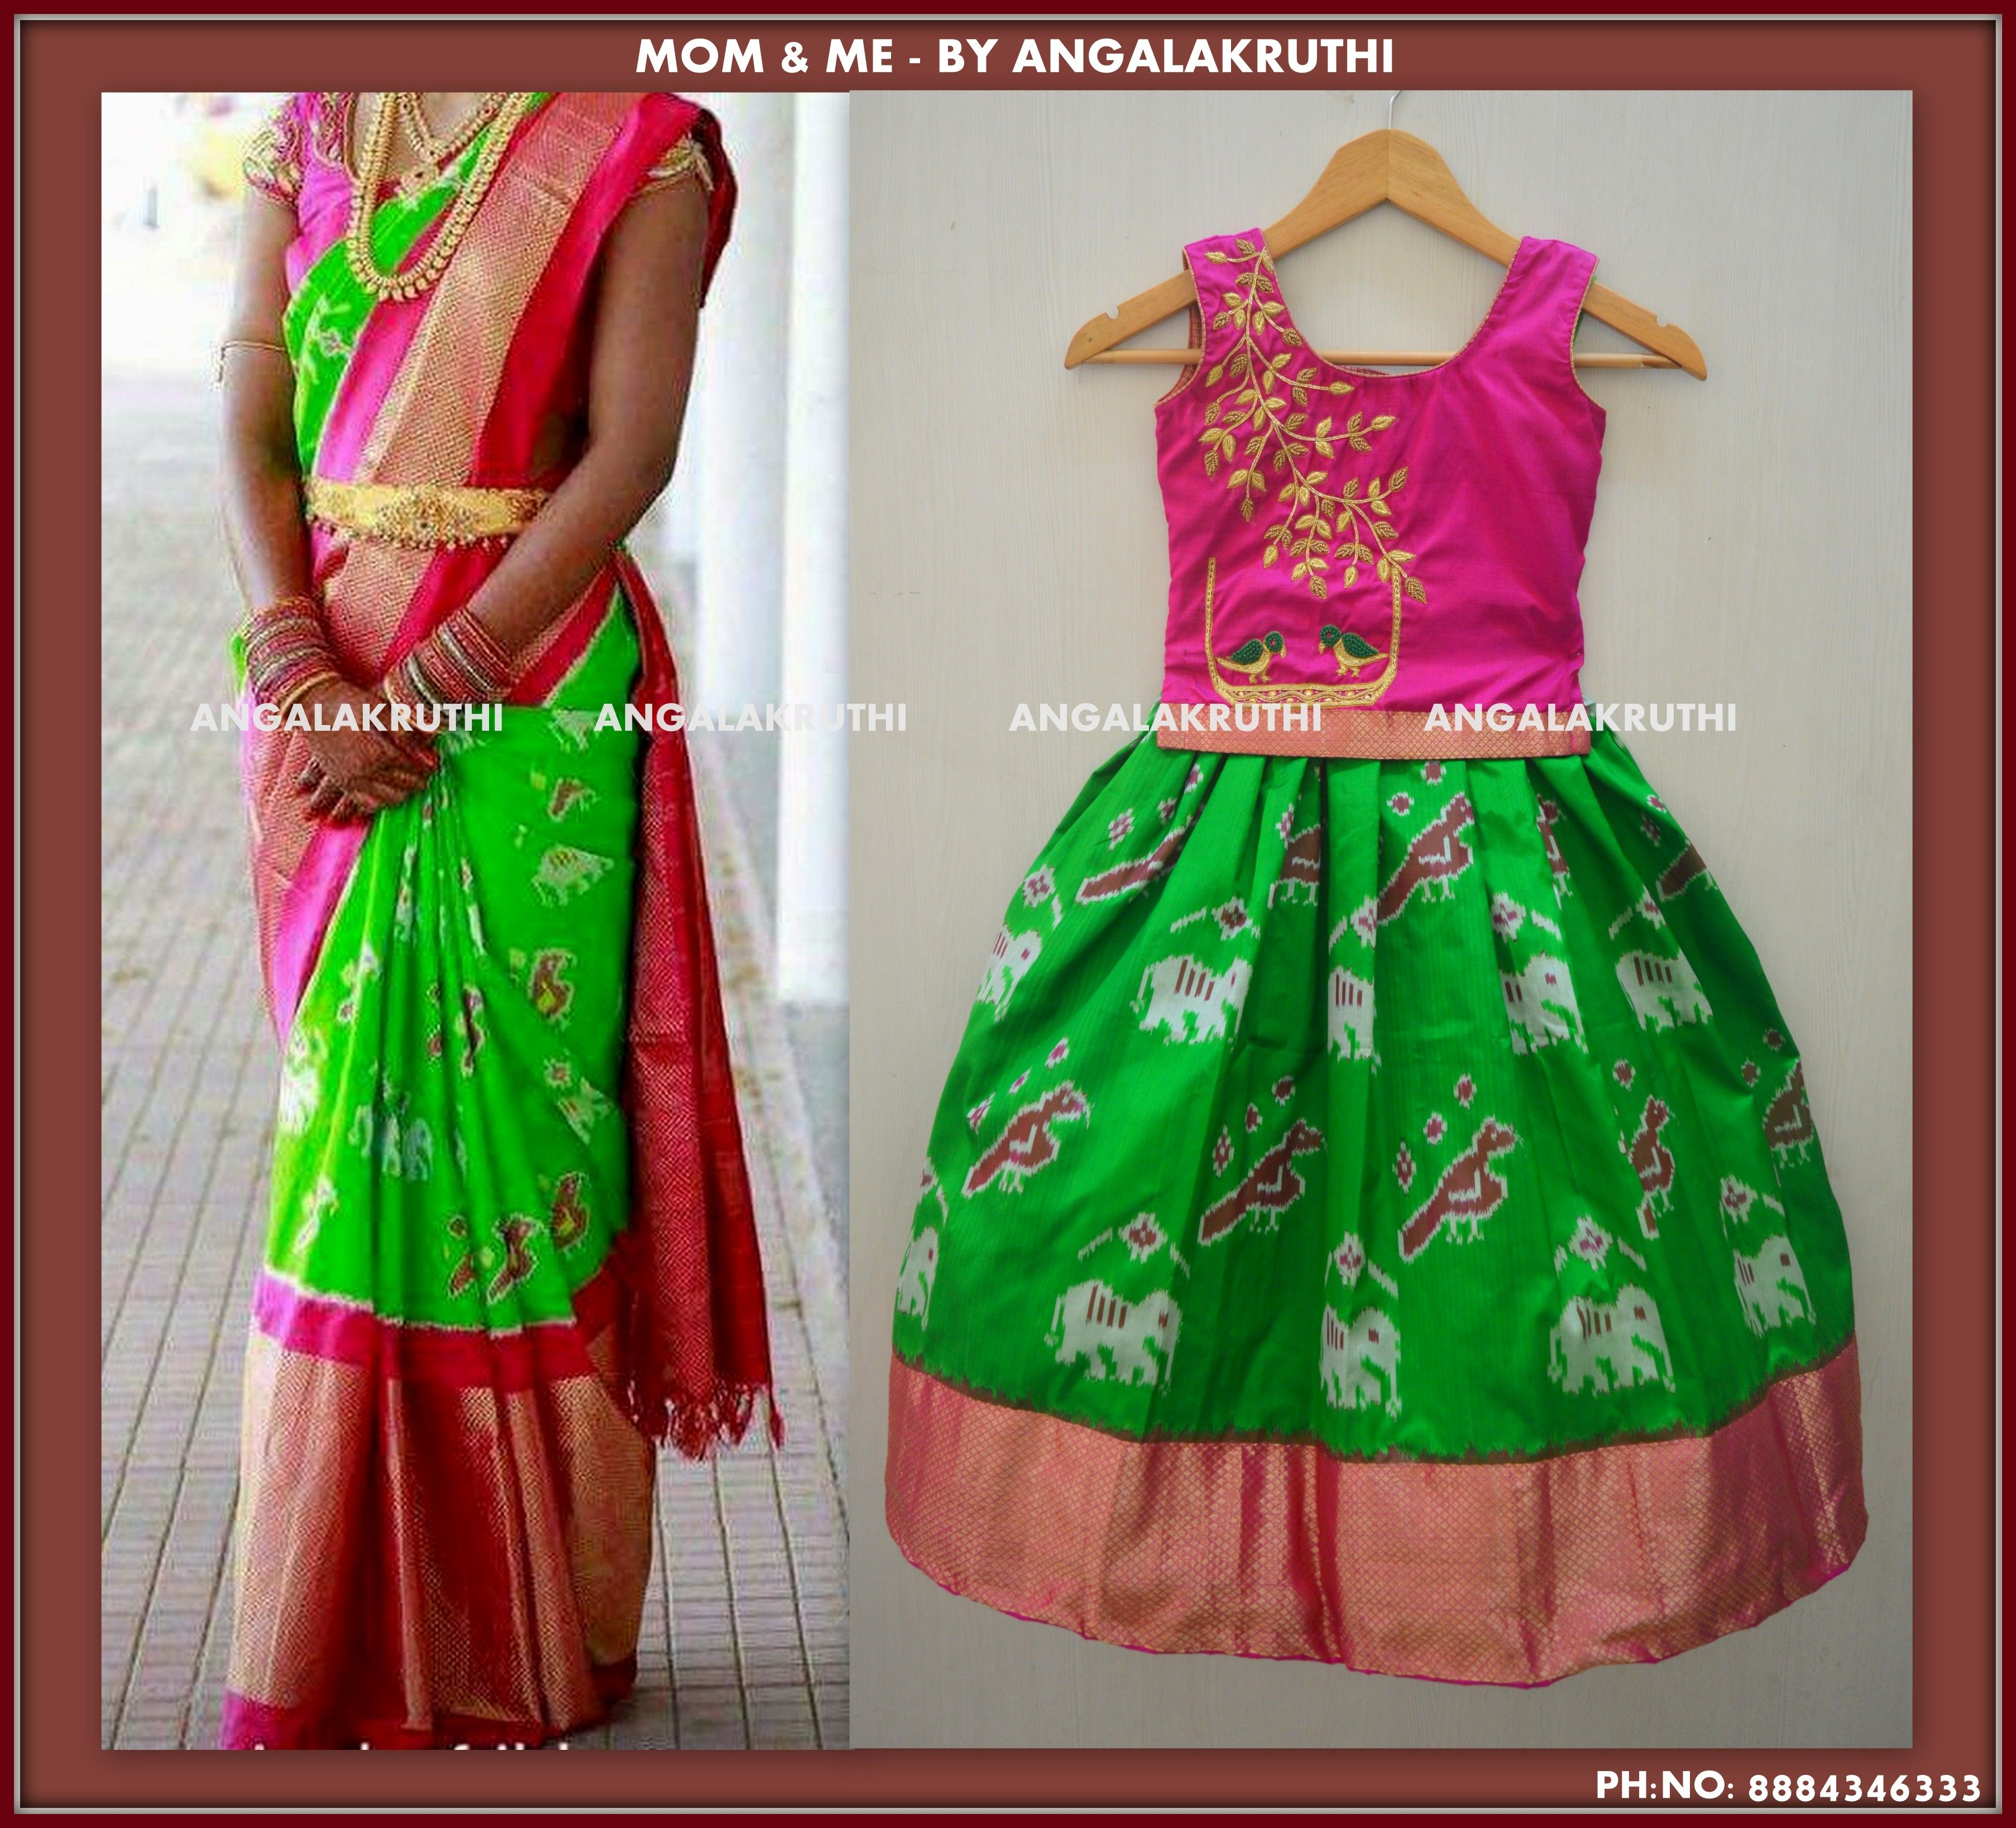 Mom And Me Designs In Bangalore By Angalakruthi Ladies Boutiques Custom Designer Boutique In Ba Kids Blouse Designs Mom And Baby Dresses Kids Dress Patterns